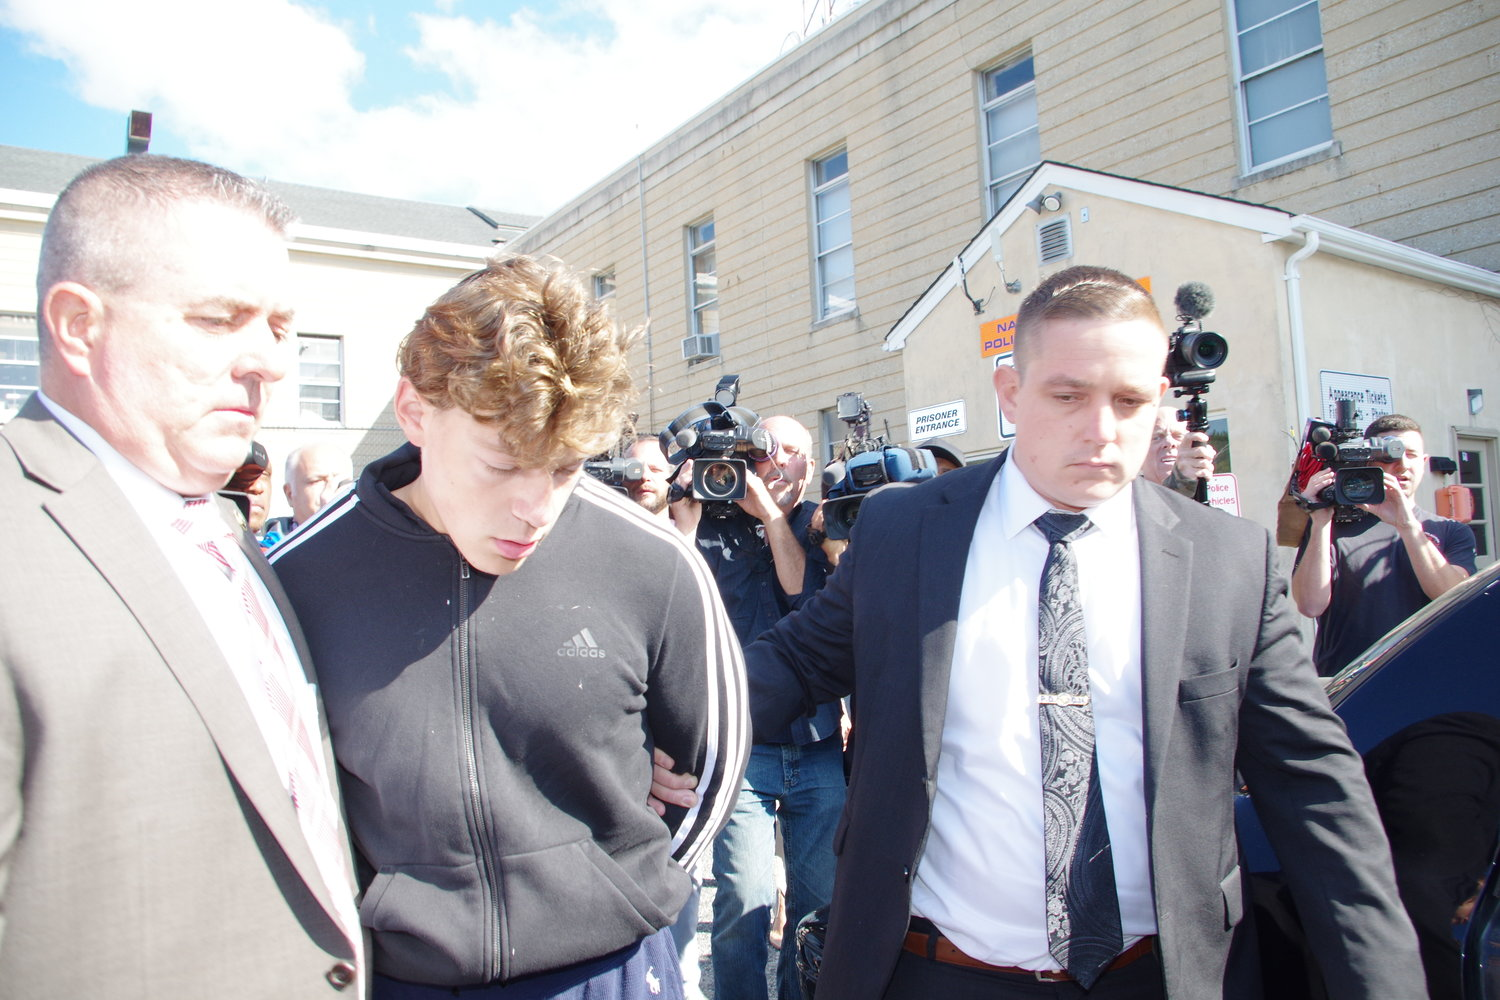 Tyler Flach was held without bail on Thursday after he pleaded not guilty in the stabbing death of 16-year-old Khaseen Morris.